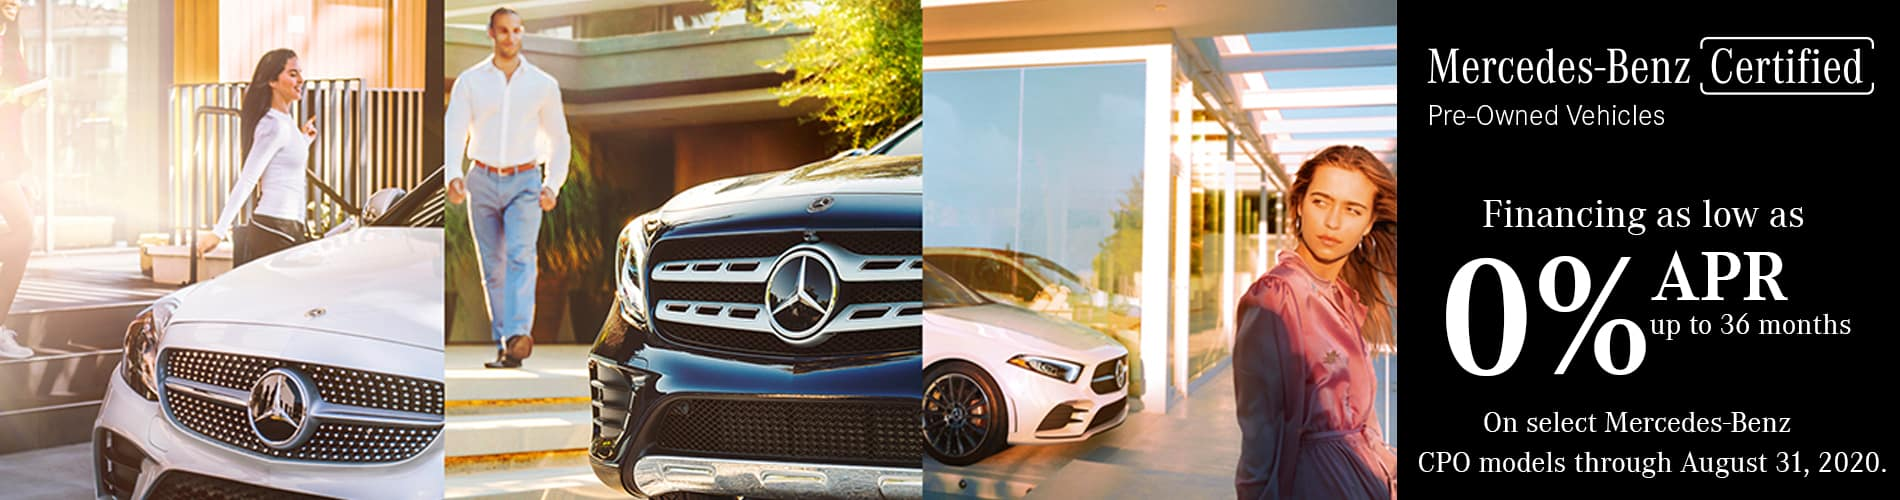 Certified Pre-Owned by Mecedes-Benz Sales Event at Keenan Motors